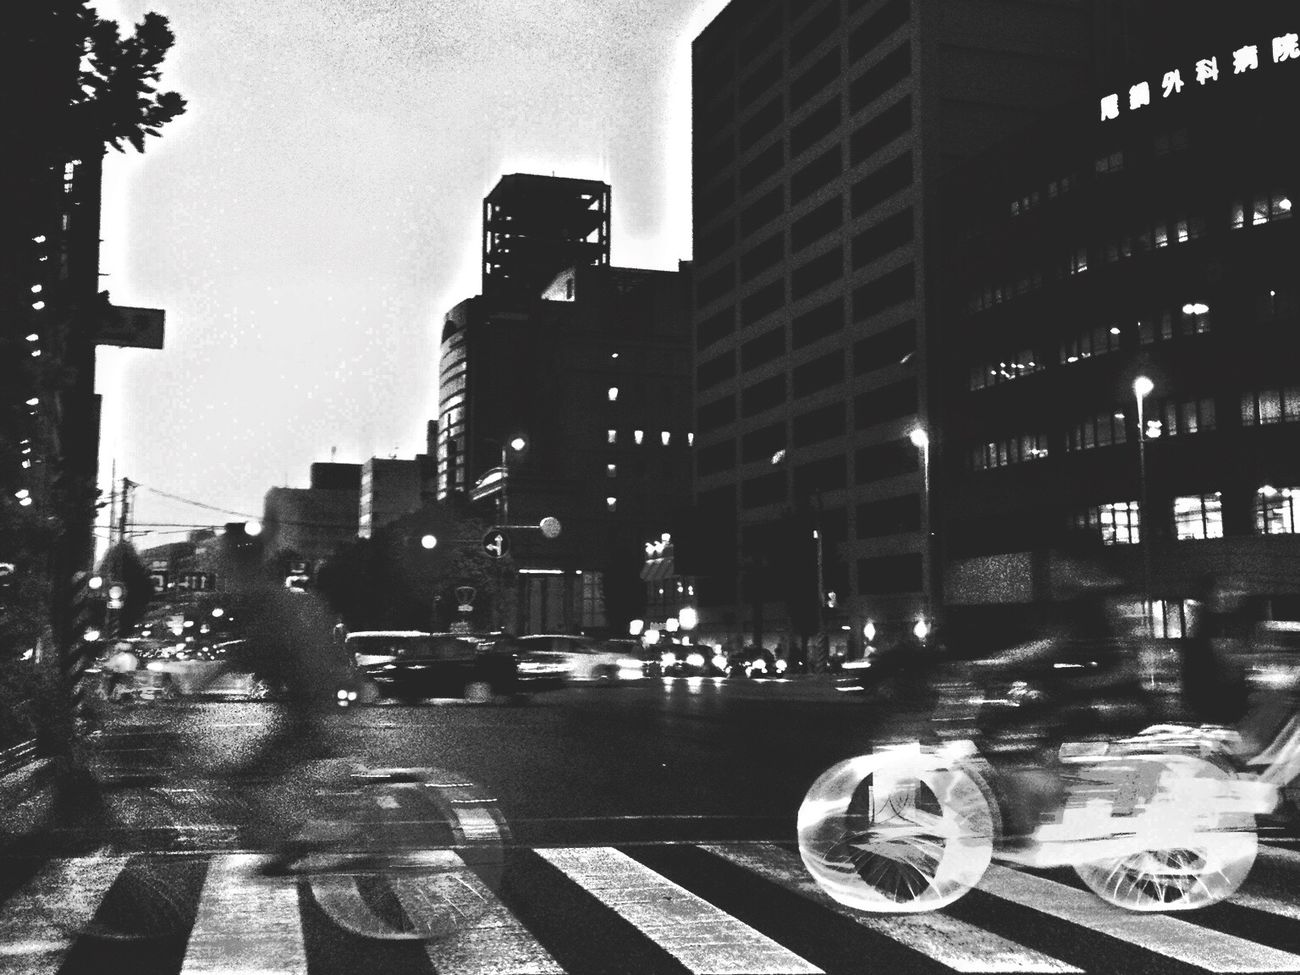 Street Streetphotography Street Photography Speed Blackandwhitephotography Black And White Night Lights Crosswalk